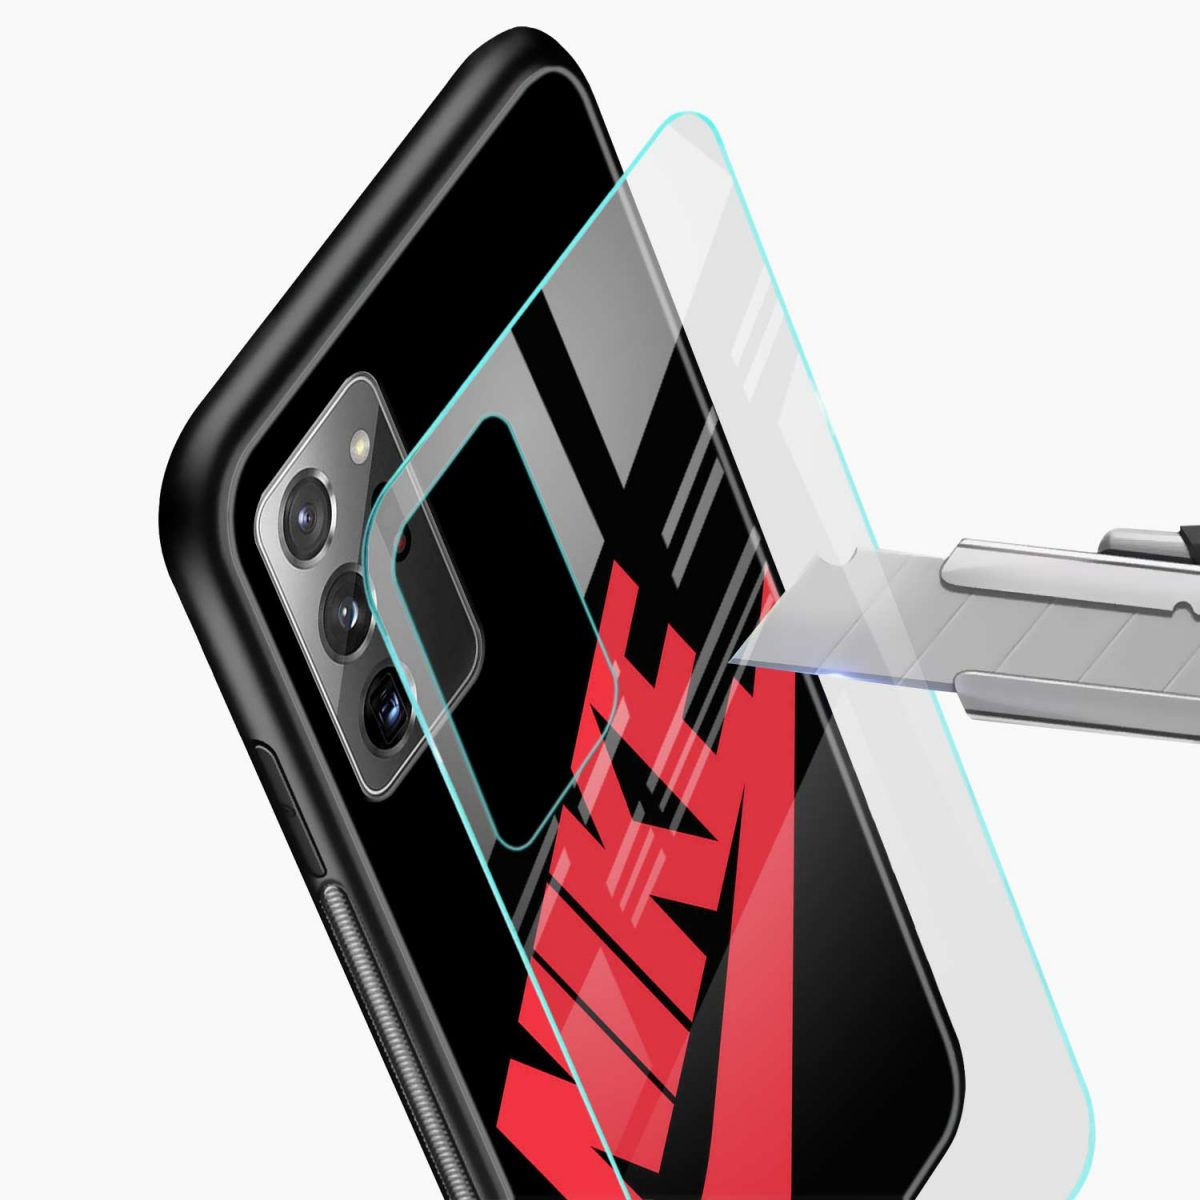 big red nike glass view samsung galaxy note20 ultra back cover